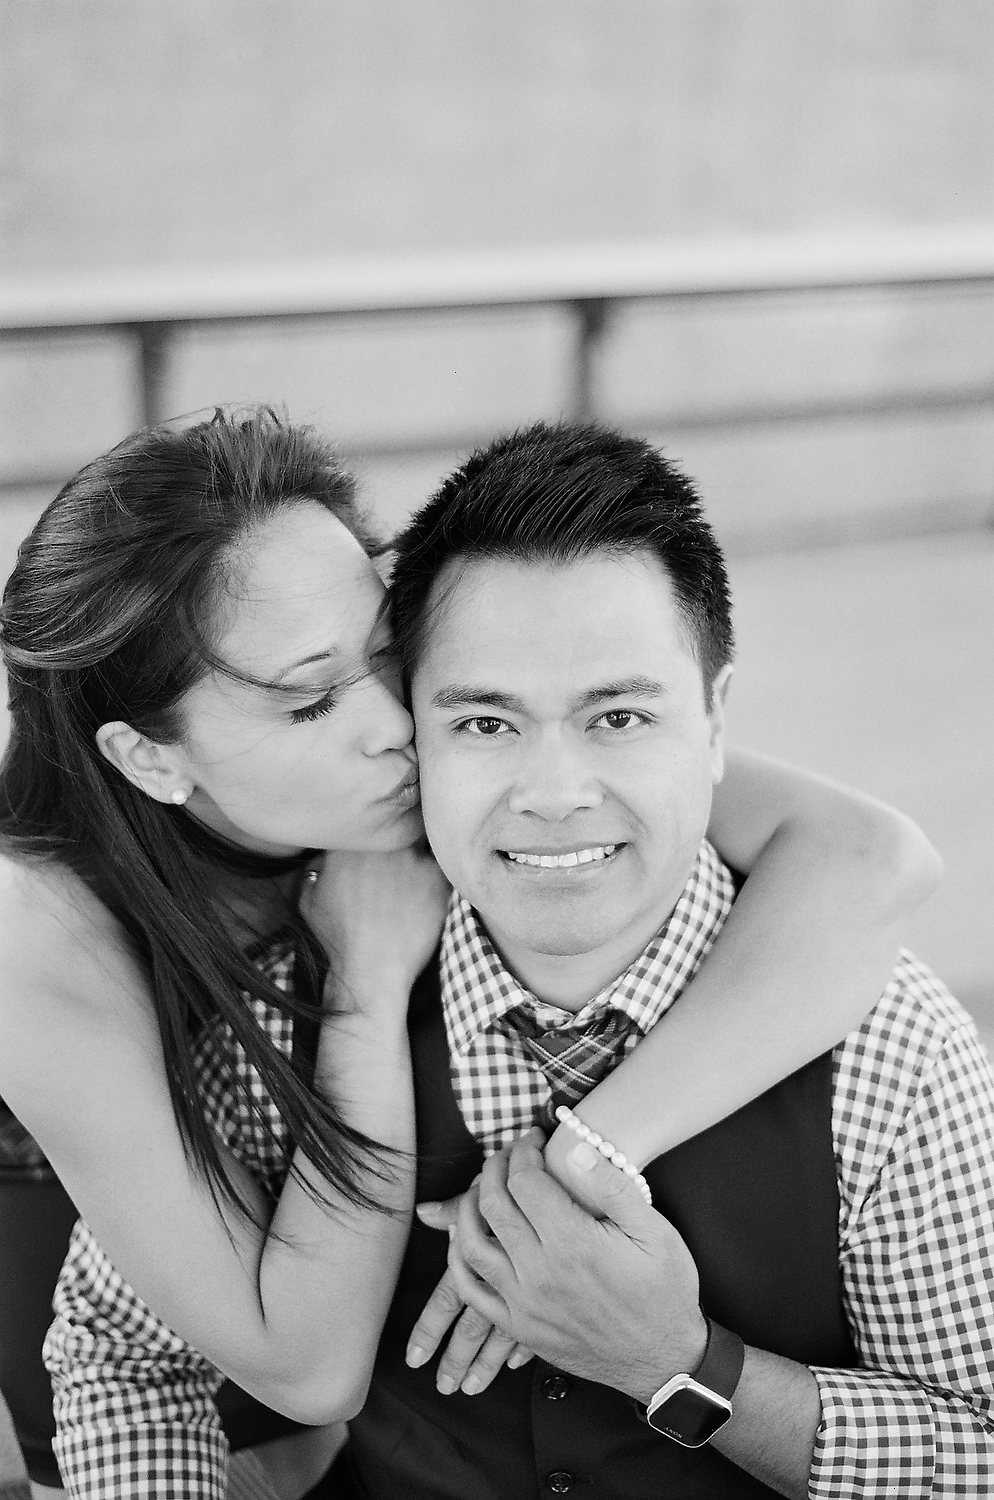 black and white photos of engaged couple at High Line taken by nyc wedding photographer wendy g